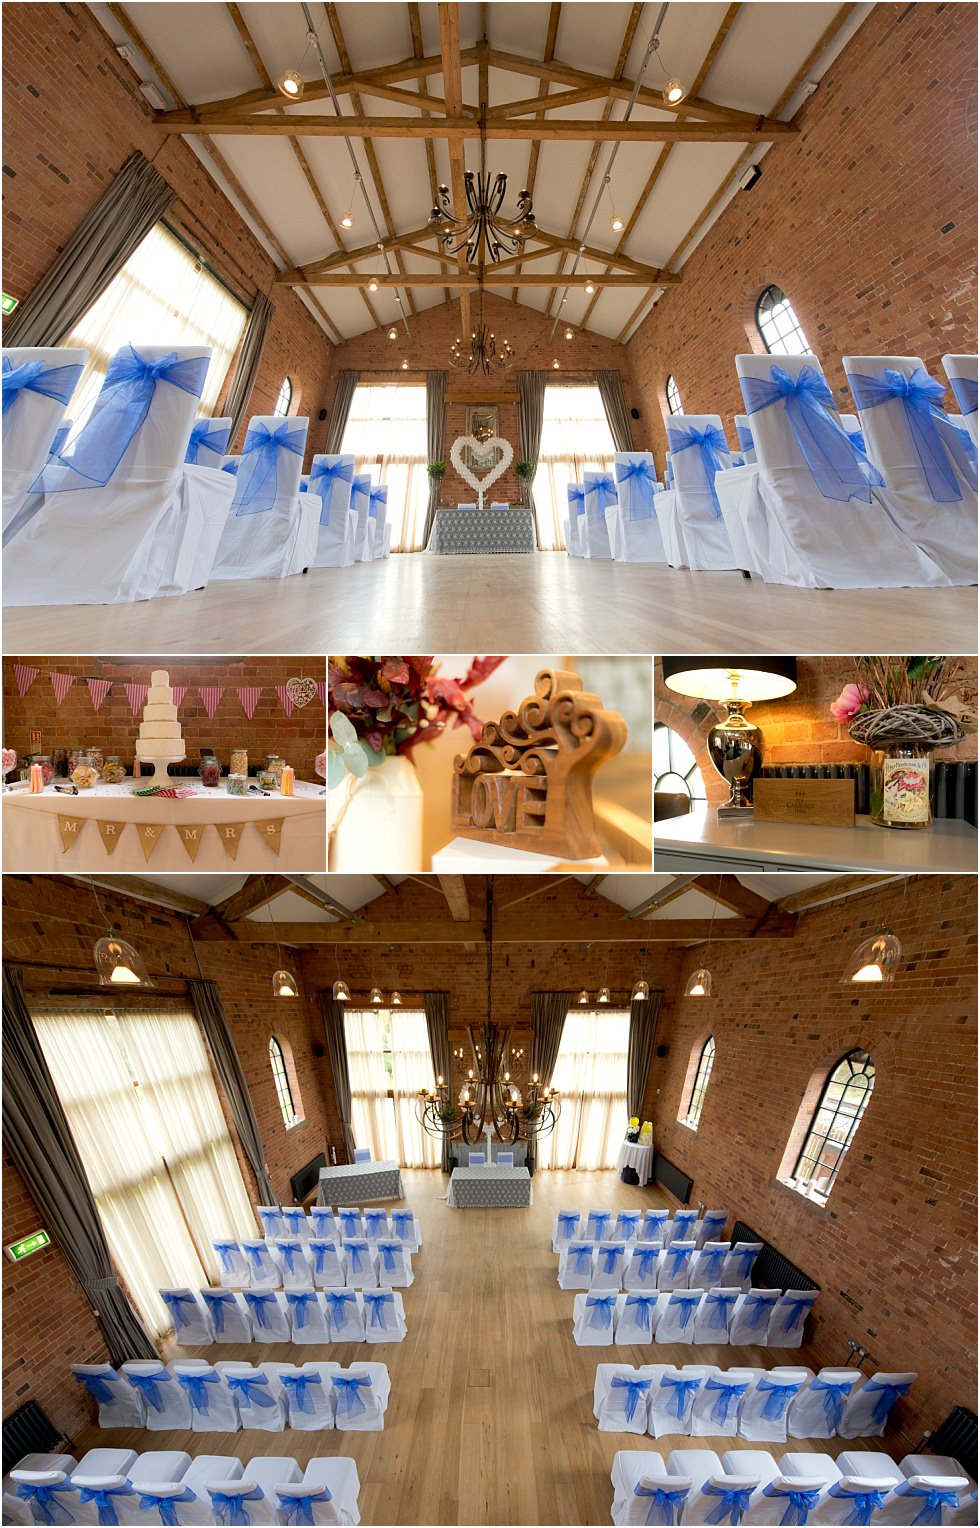 Wedding_at_The_Carriage_Hall_Plumtree_Nottingham_By_Nottingham_Wedding_Photographers_Matt_Selby_Photography_05